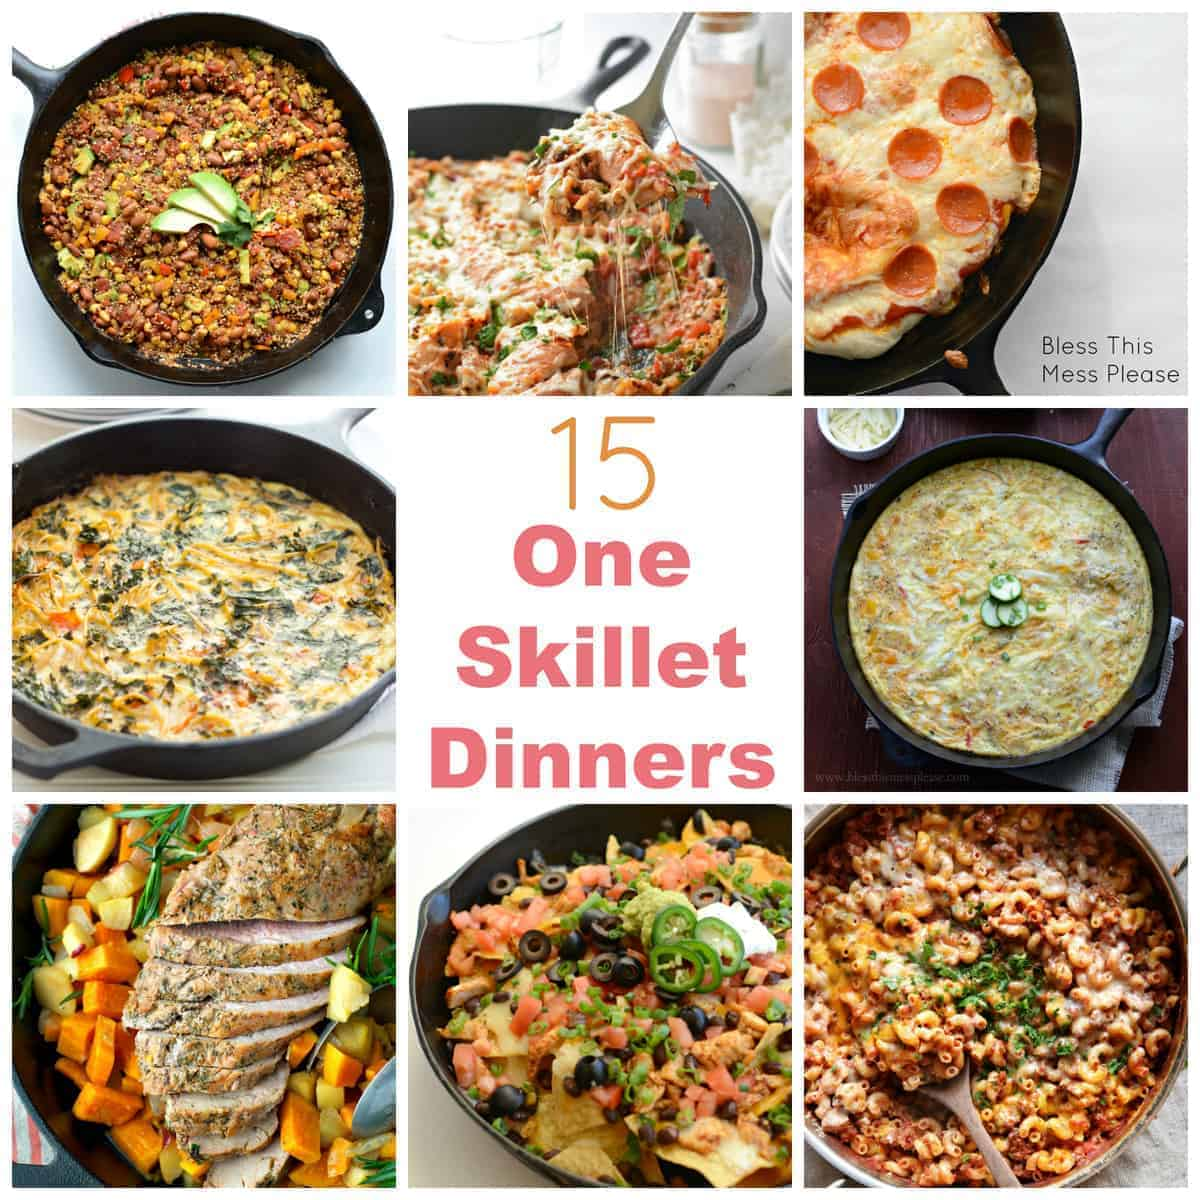 15 One Skillet Dinners